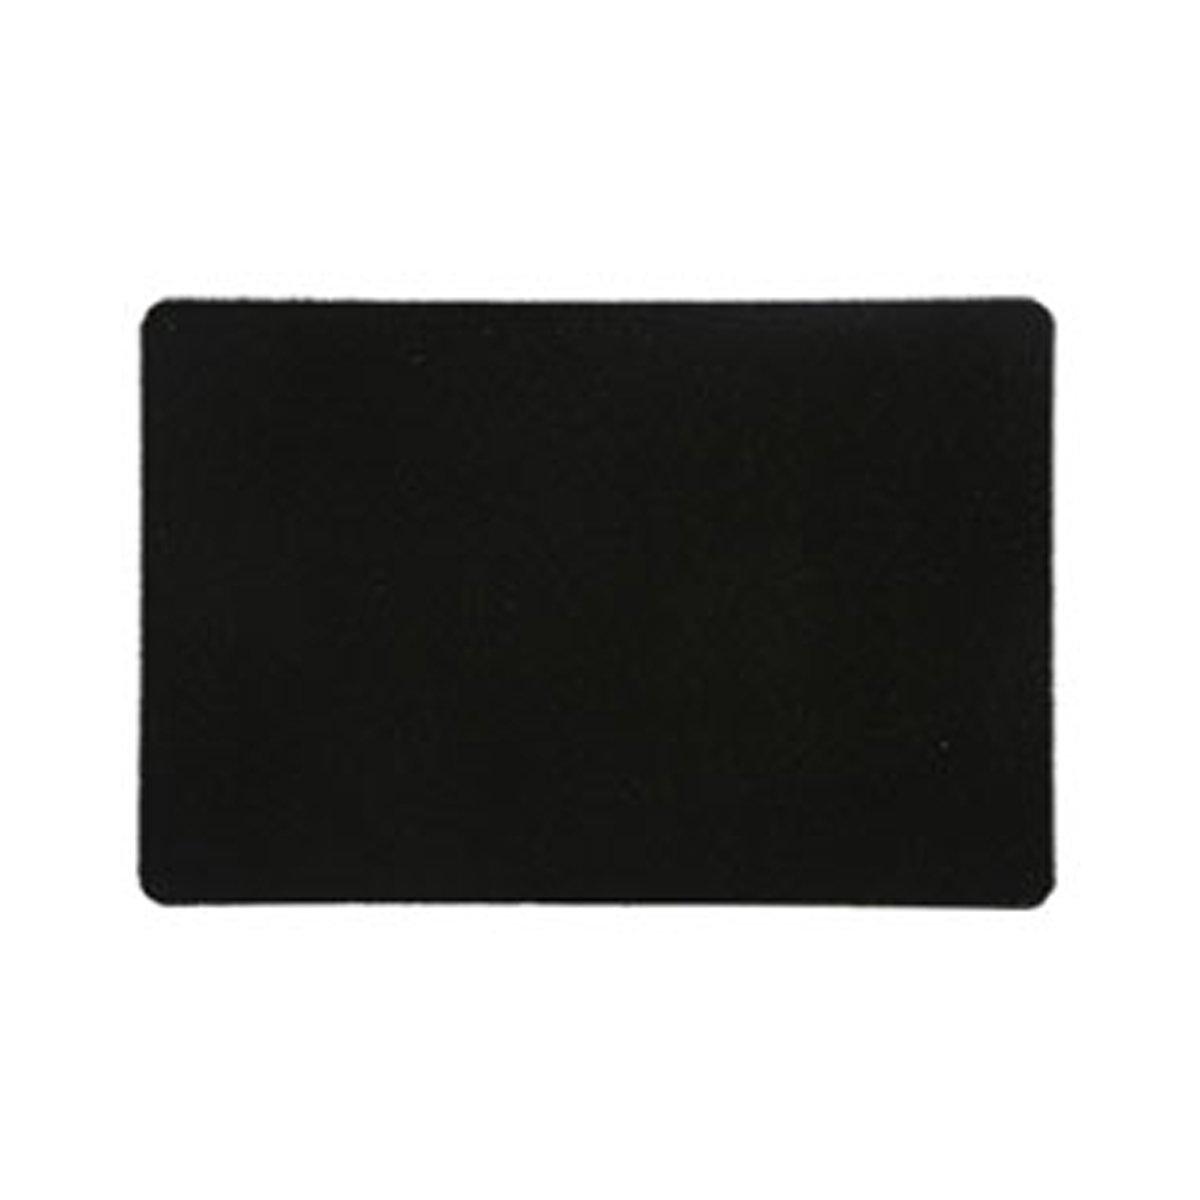 """2PCs Color Cork Tile Boards 17.8""""x 12"""" Wall Bulletin Boards Picture Collage for Classroom Office Home Decor (Black)"""